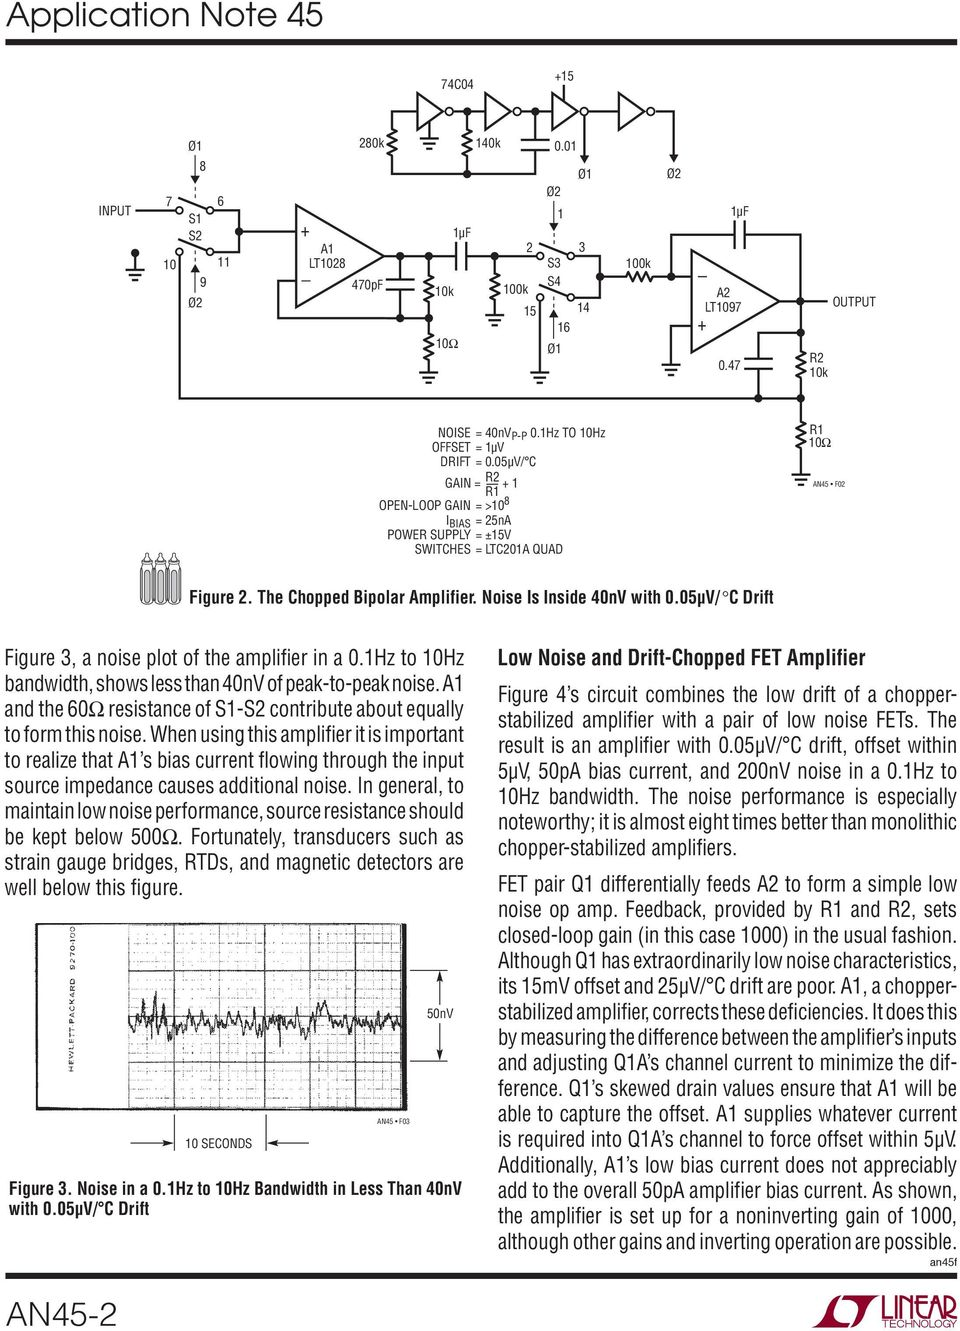 Application Note 45 June Measurement And Control Circuit Collection Lt1006 Precision Single Supply Op Amp Linear Technology A1 The 60 Resistance Of S1 S2 Contribute About Equally To Form This Noise